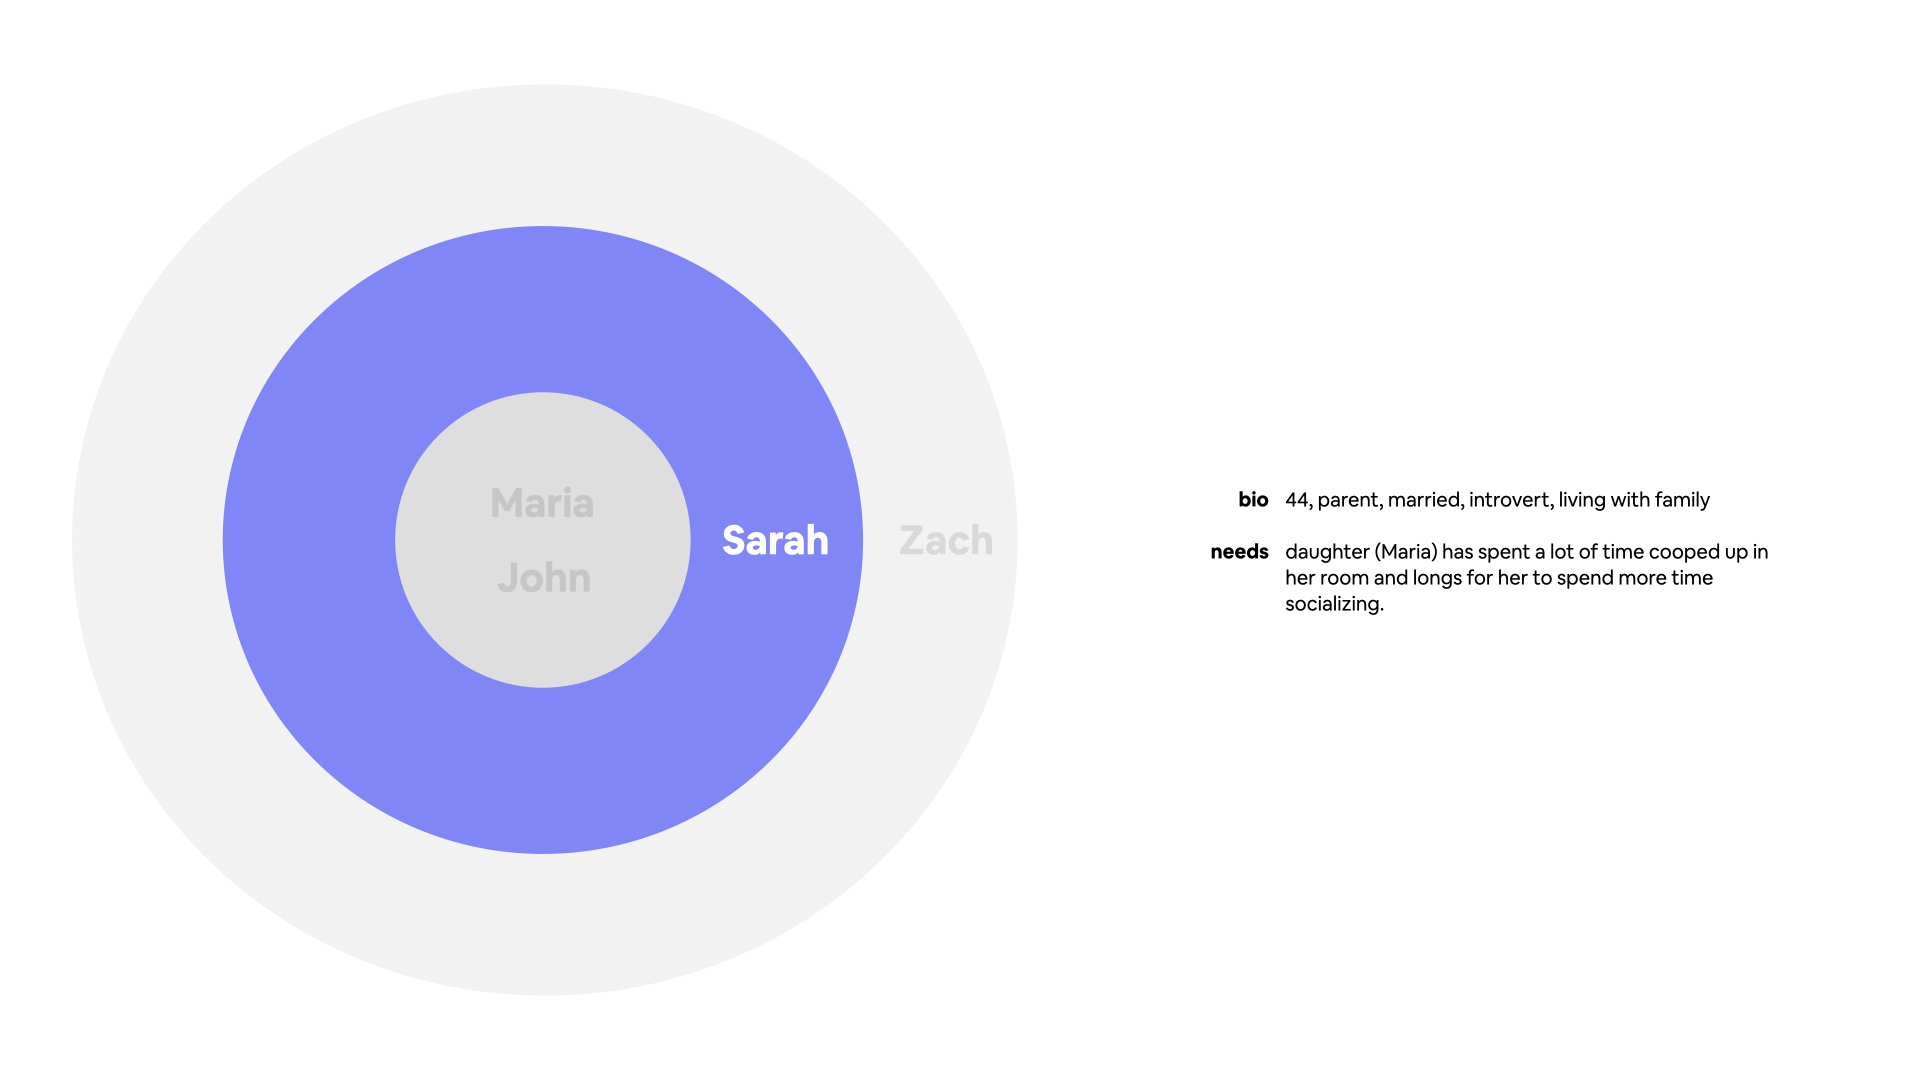 Secondary persona graph for Sarah, a 44 year old parent.